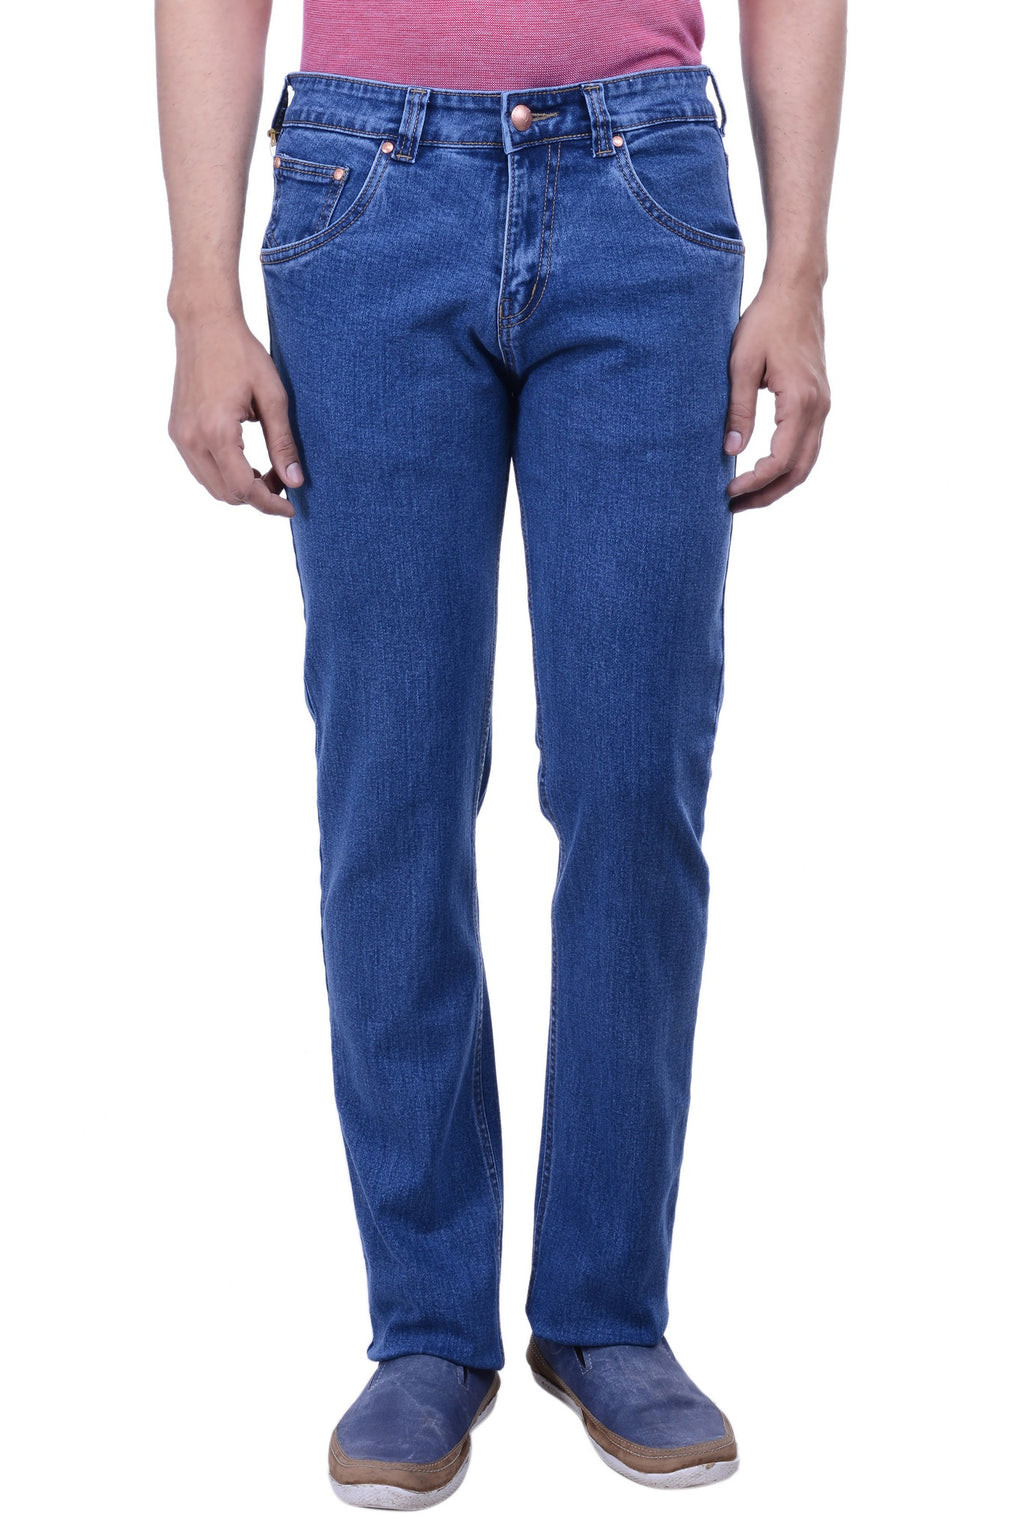 Hoffmen Slim Fit Men's Jeans BSD3902